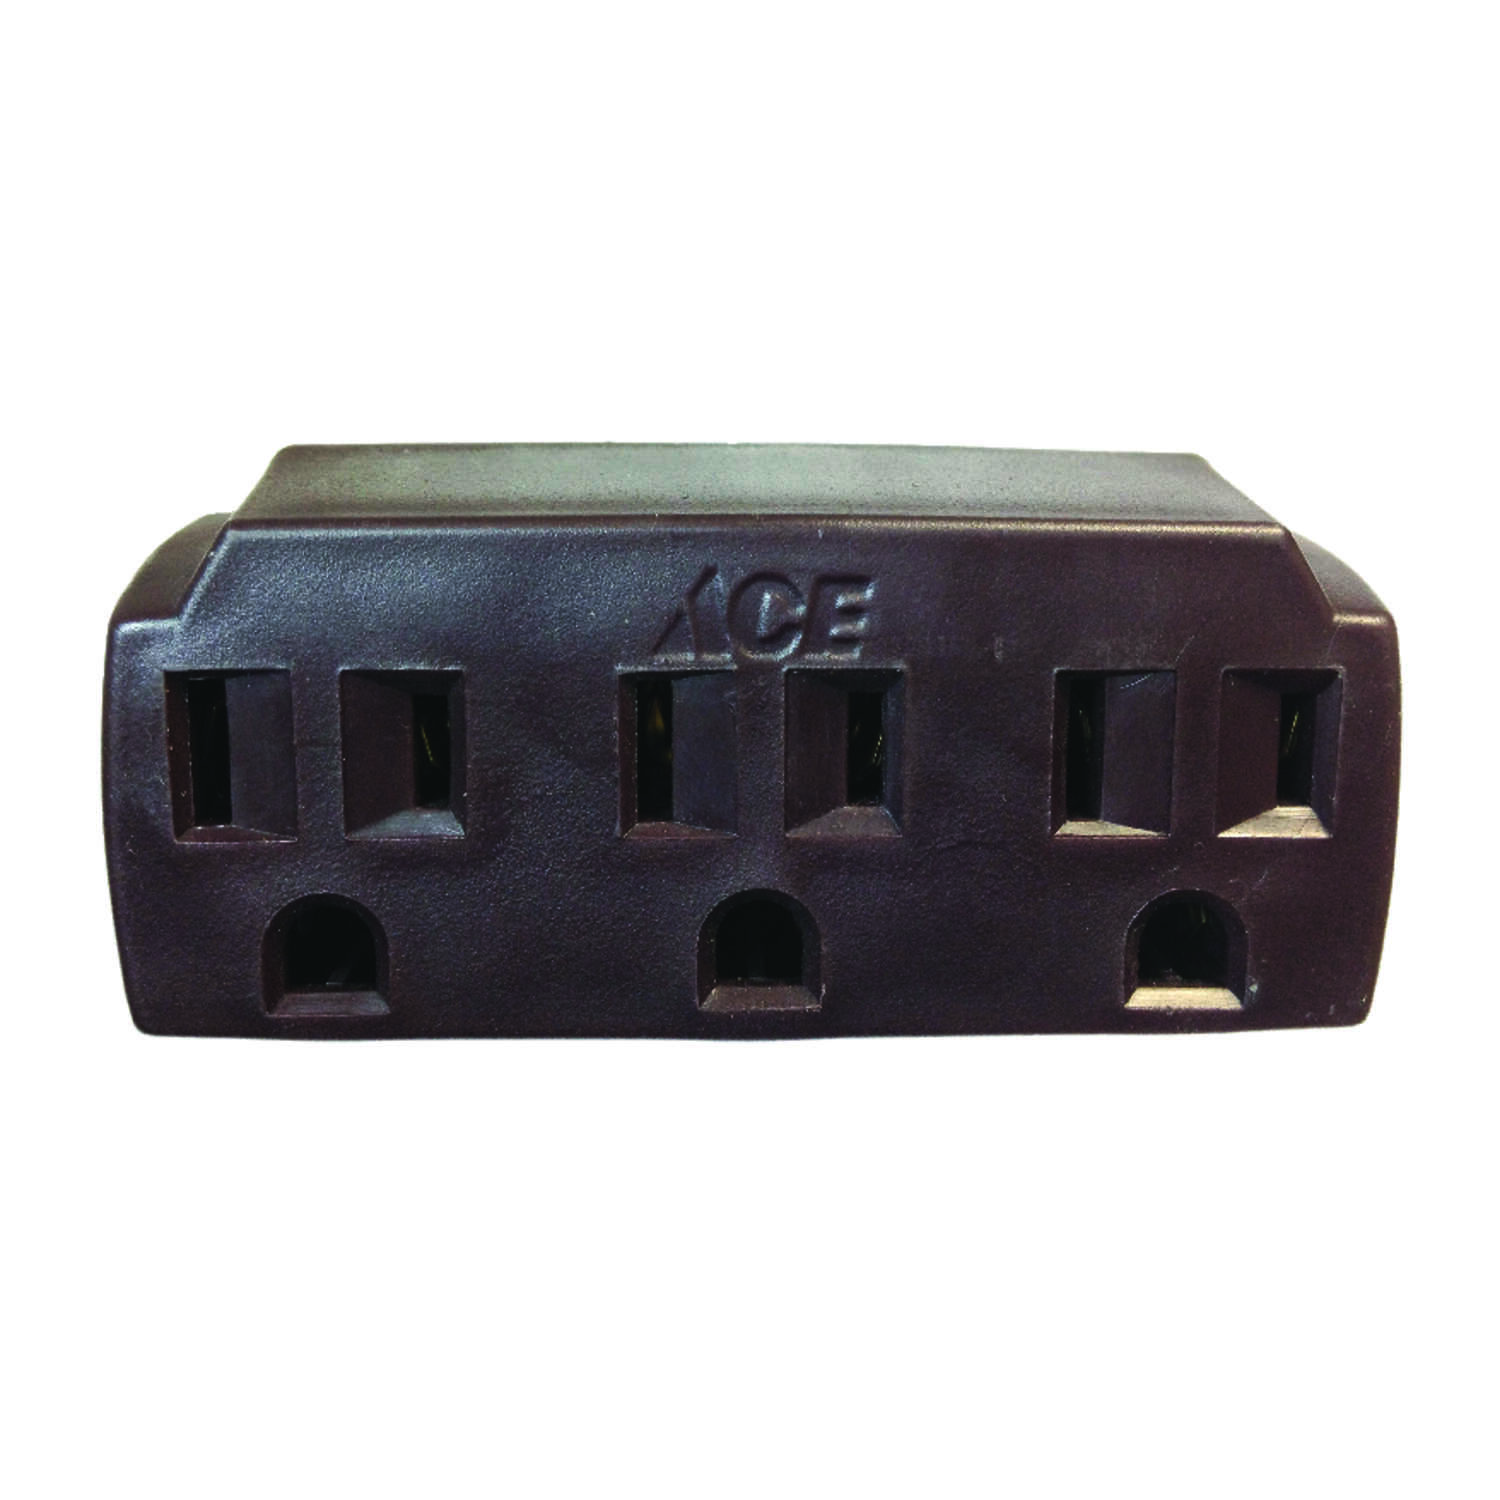 Ace  Grounded  3  Triple Outlet Adapter  Surge Protection 1 pk